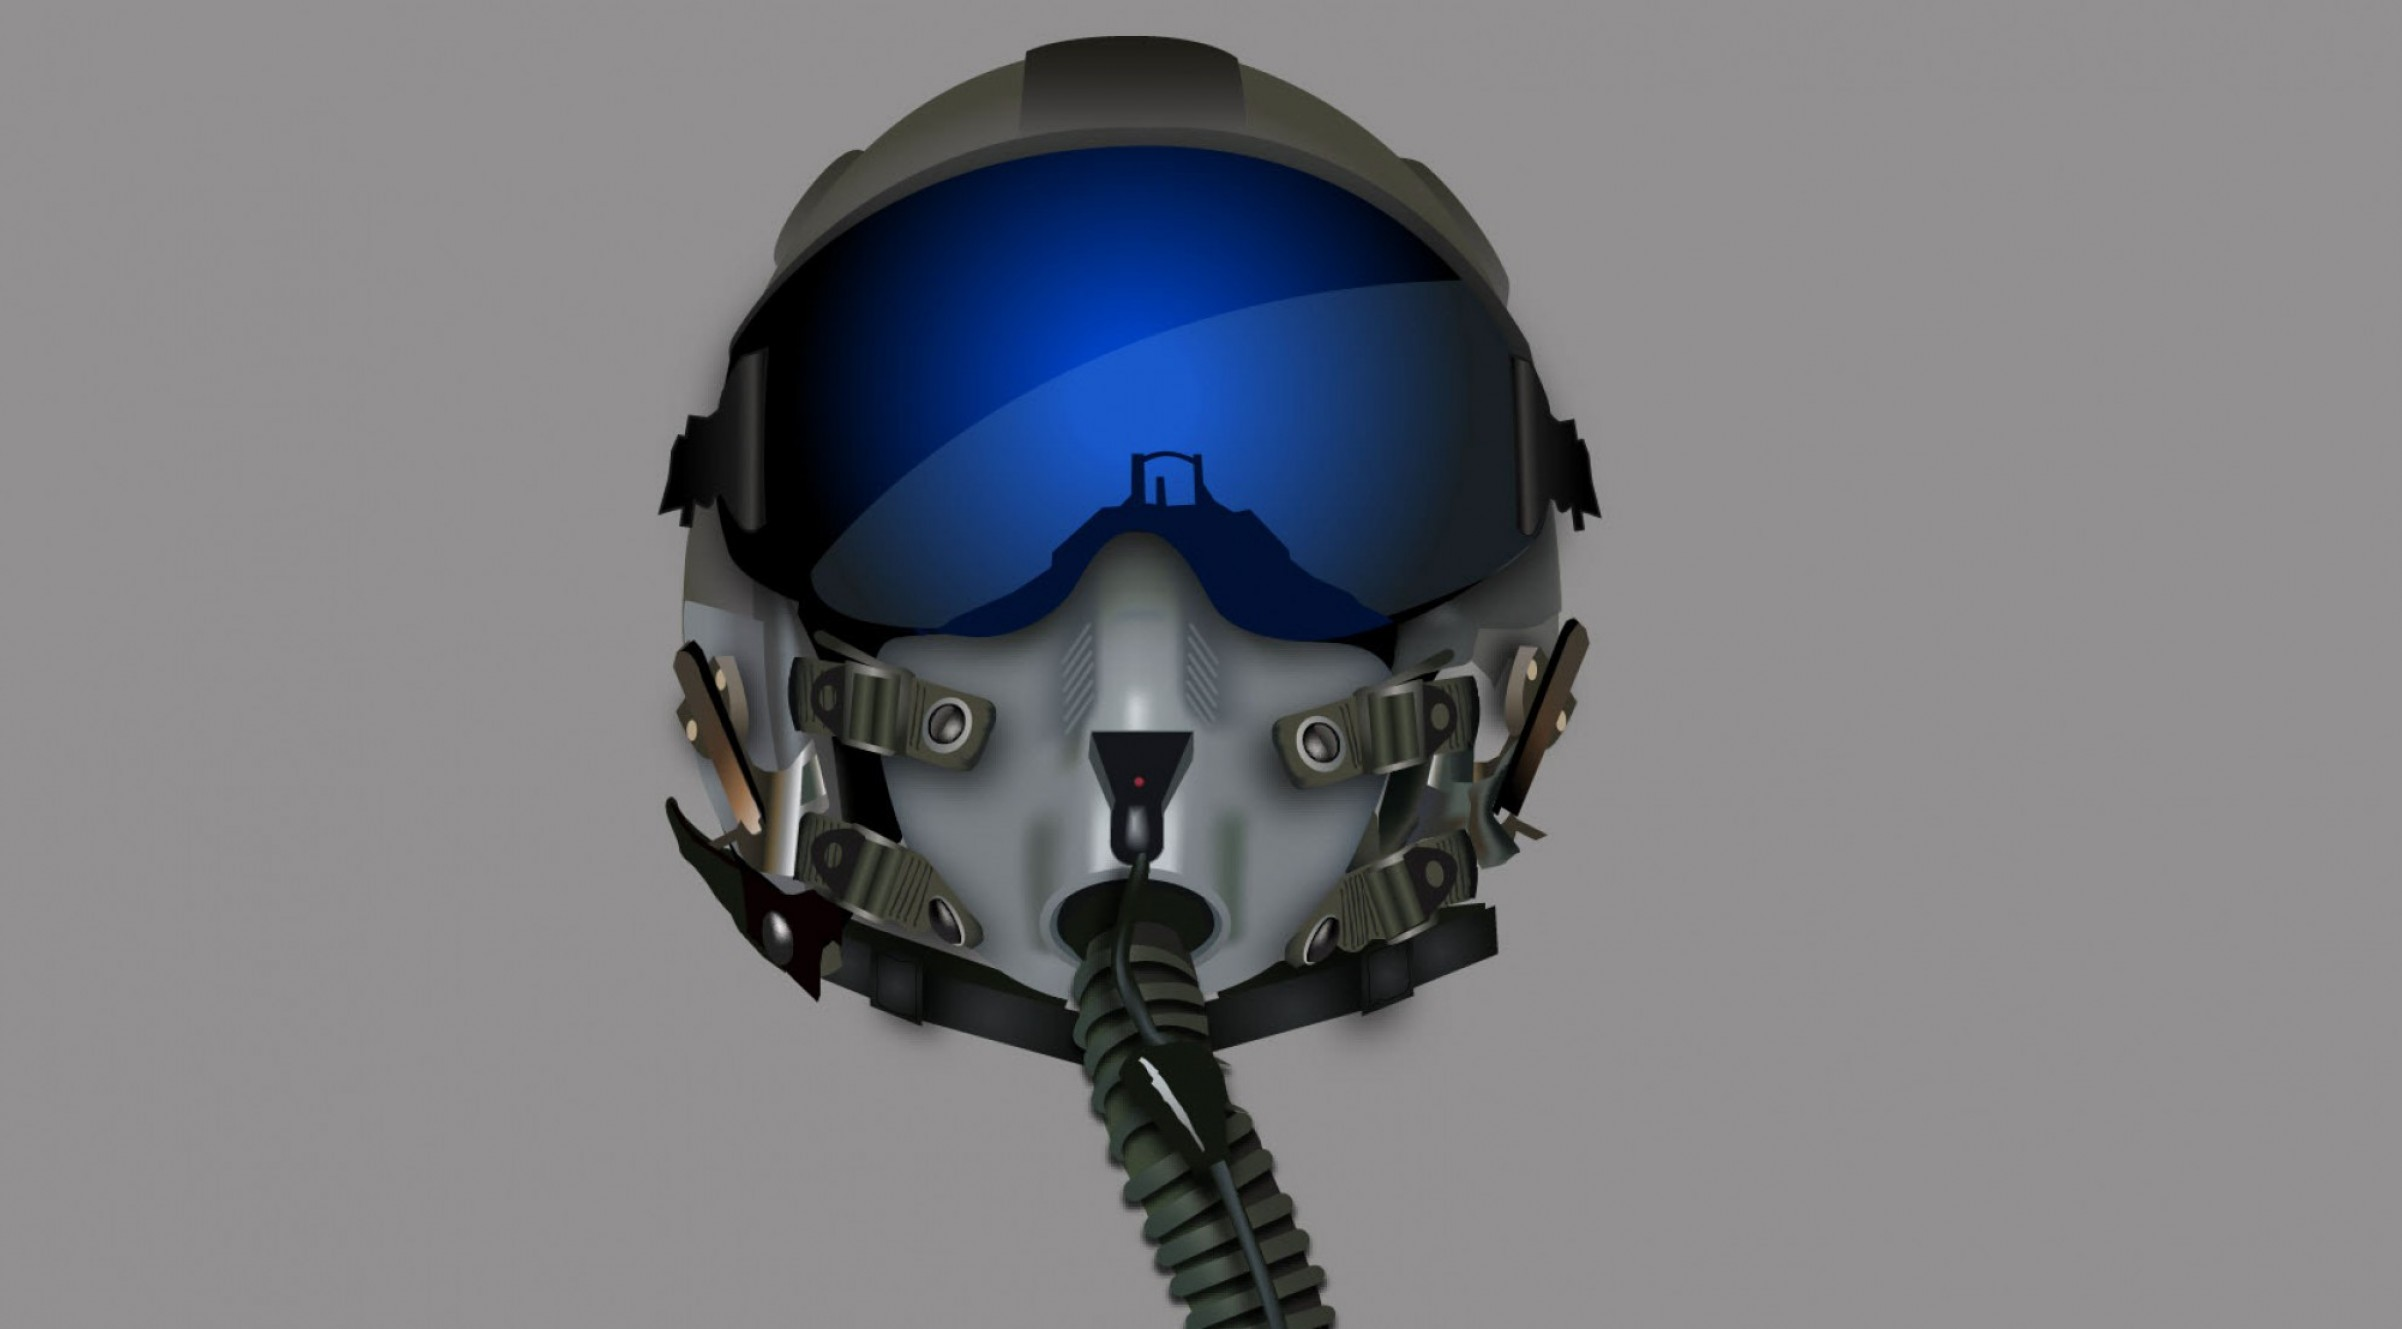 Fighter Helmet Vectors: Vector Gradient Mesh Fighter Pilot Helmet